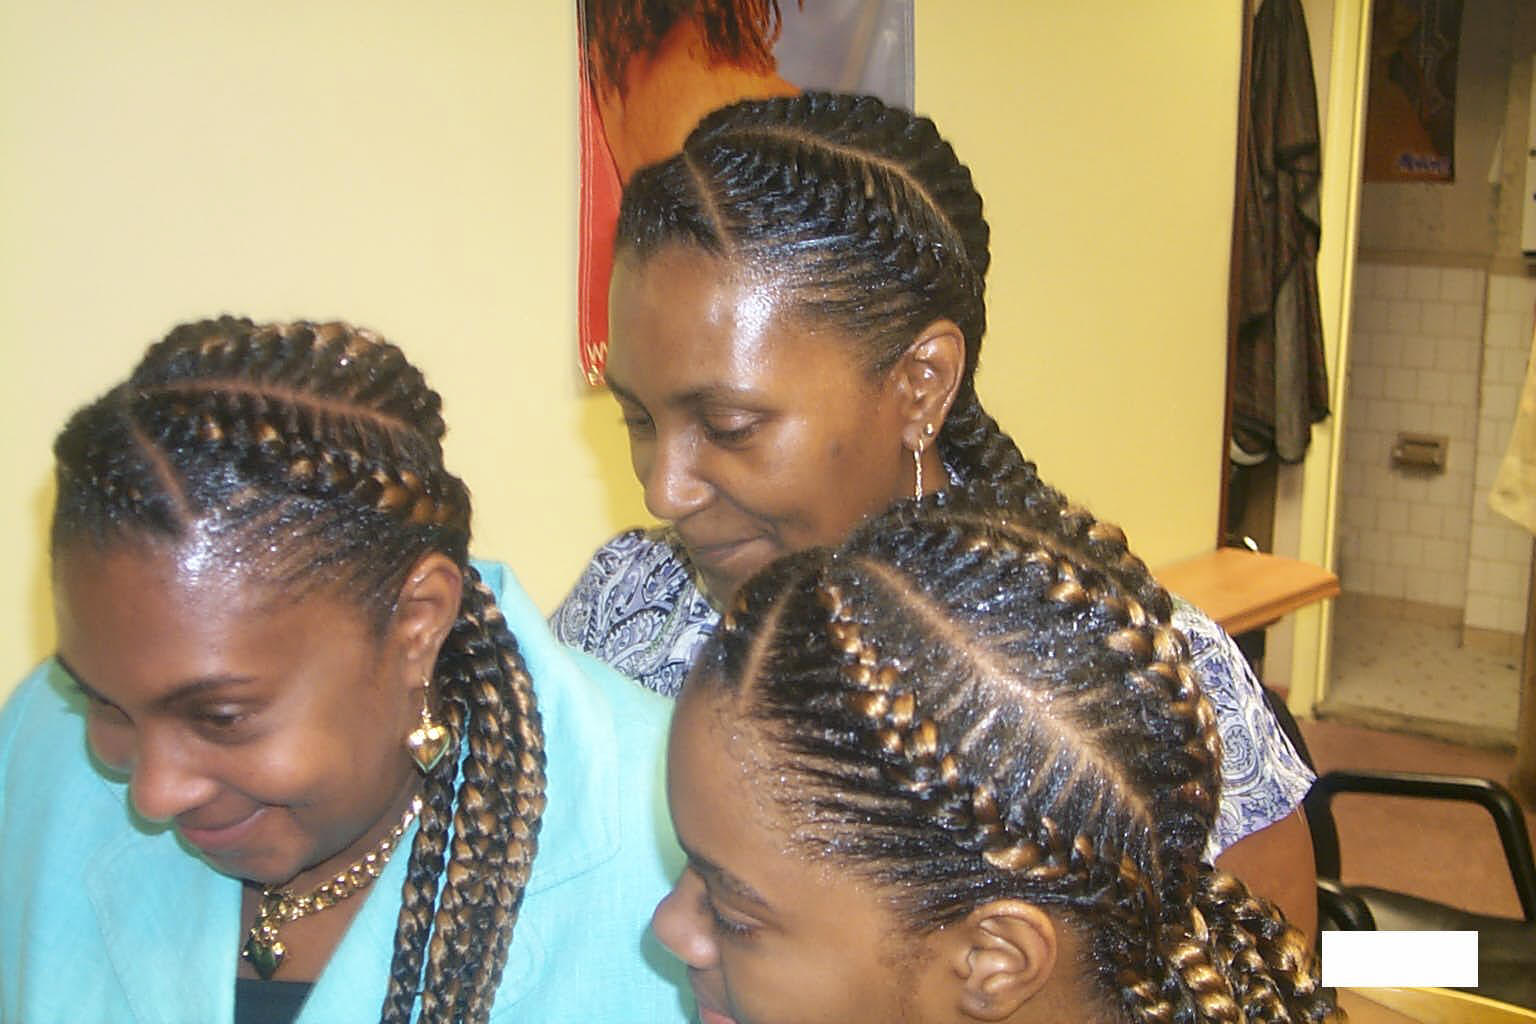 449 3882 cornrow twist roots cornrows new feeding french braid